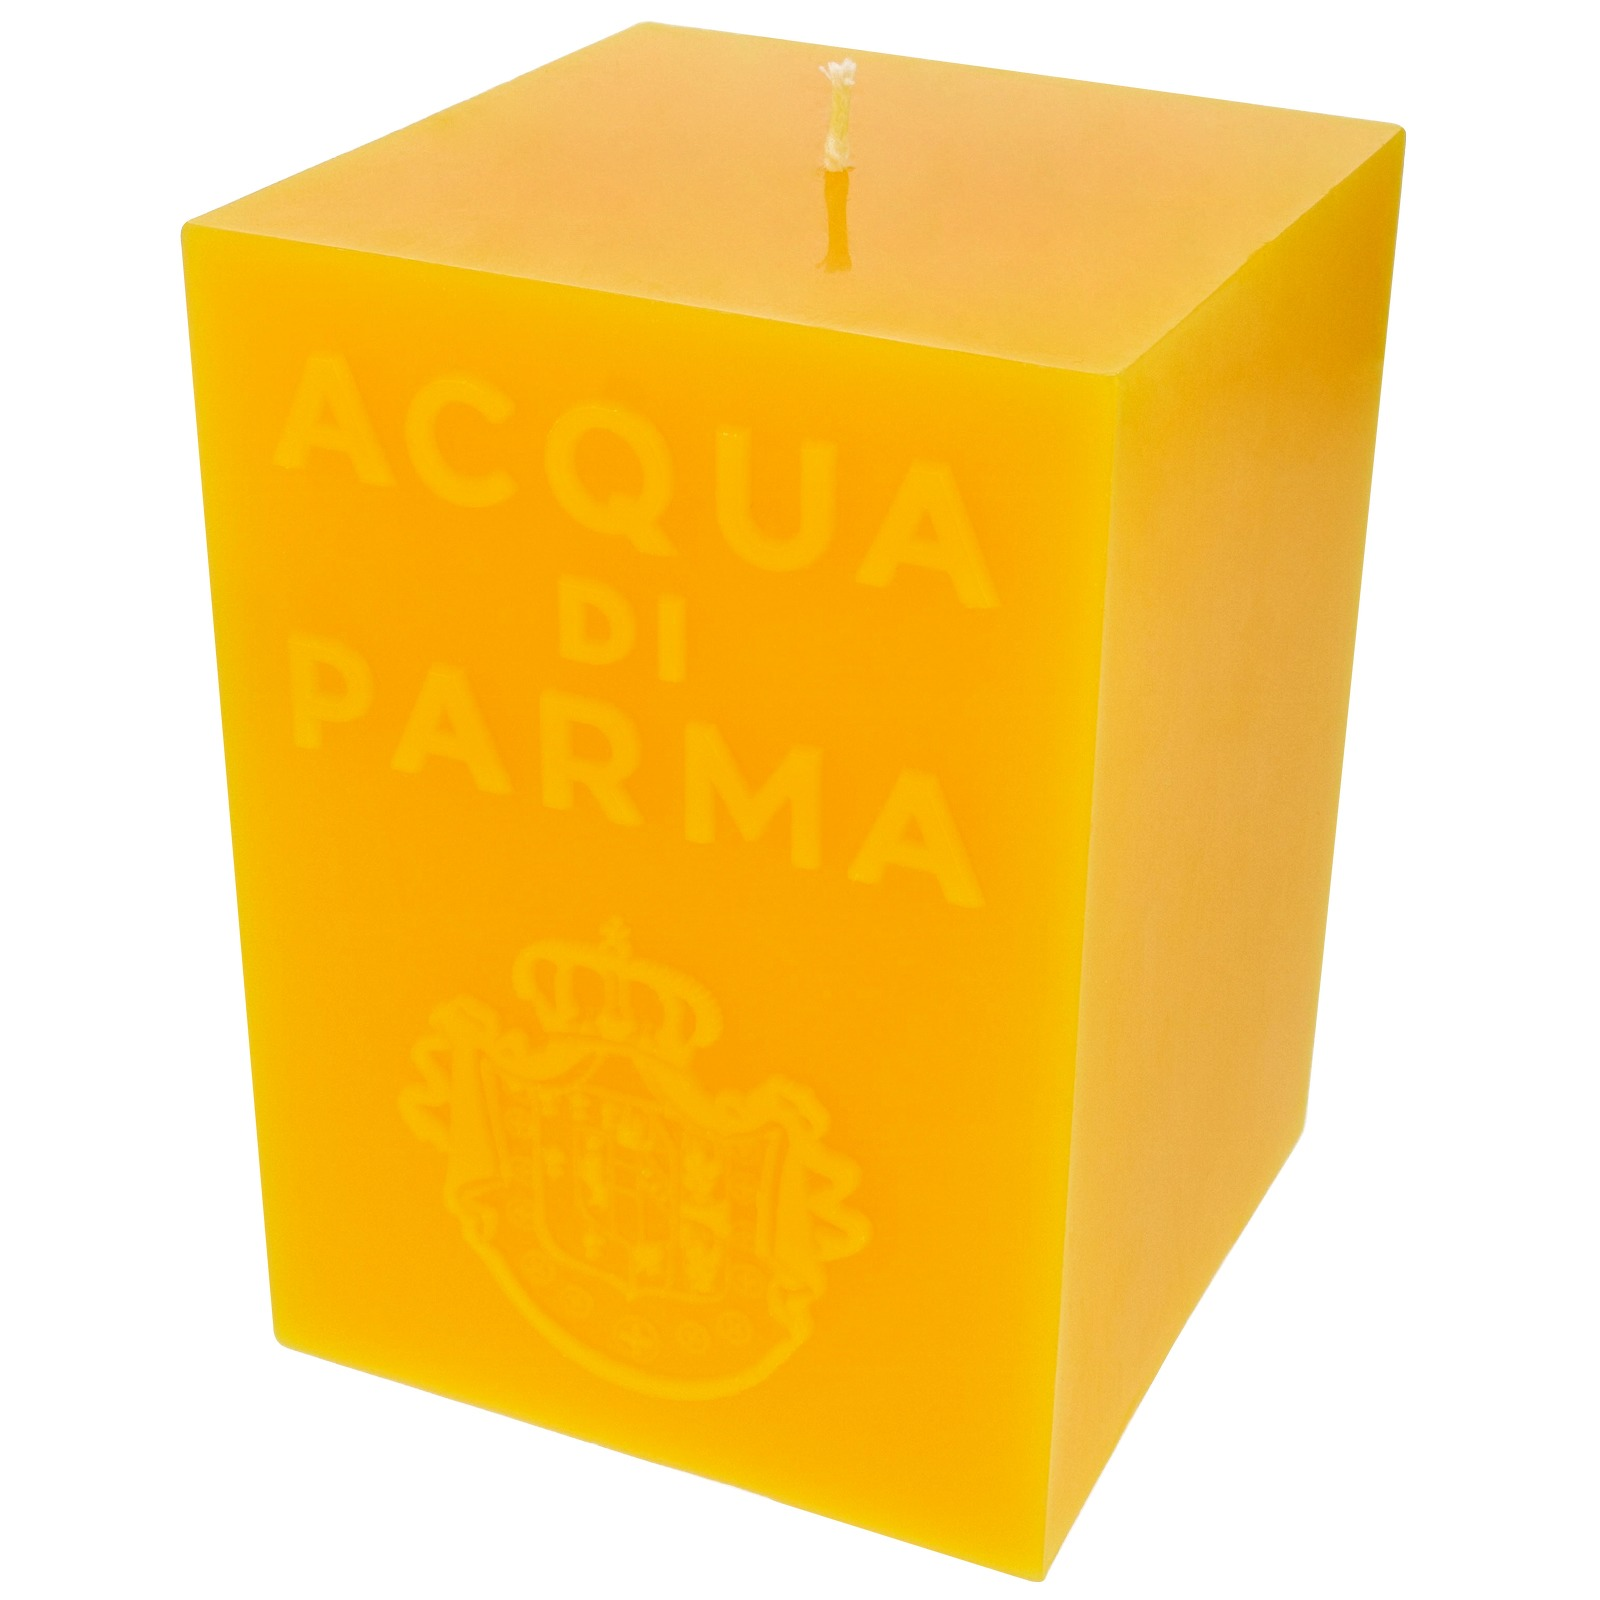 Acqua Di Parma Home Fragrances Colonia Cube Candle 1000g